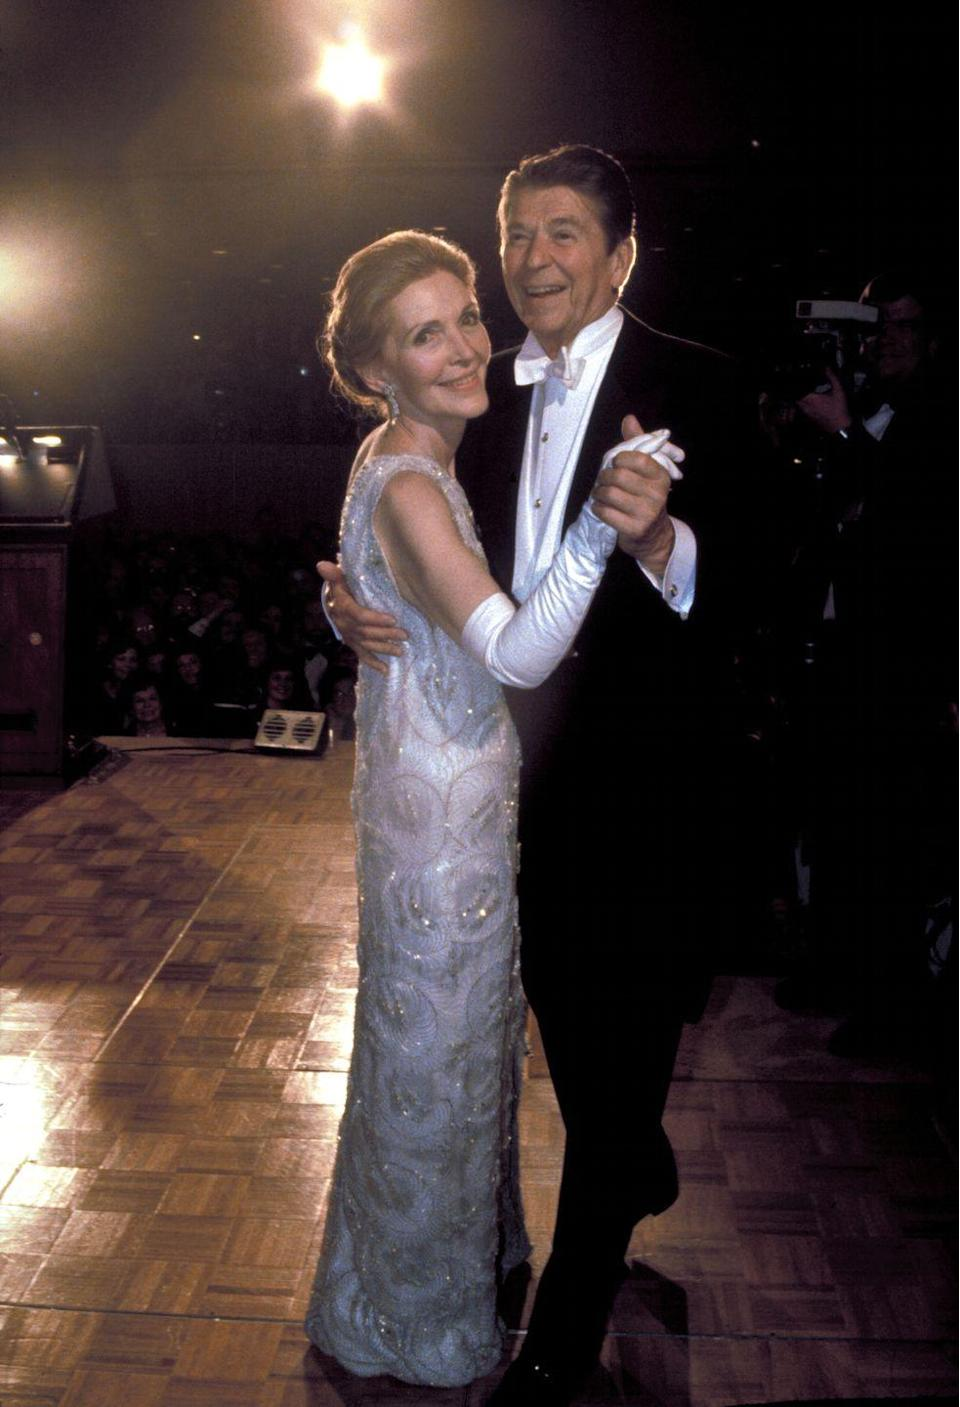 <p>President Reagan shares his first dance with his wife, Nancy Reagan. No stranger to a black tie event, the former Hollywood actress stunned in a white one-shoulder column gown with silver beading, designed by James Galanos.</p>